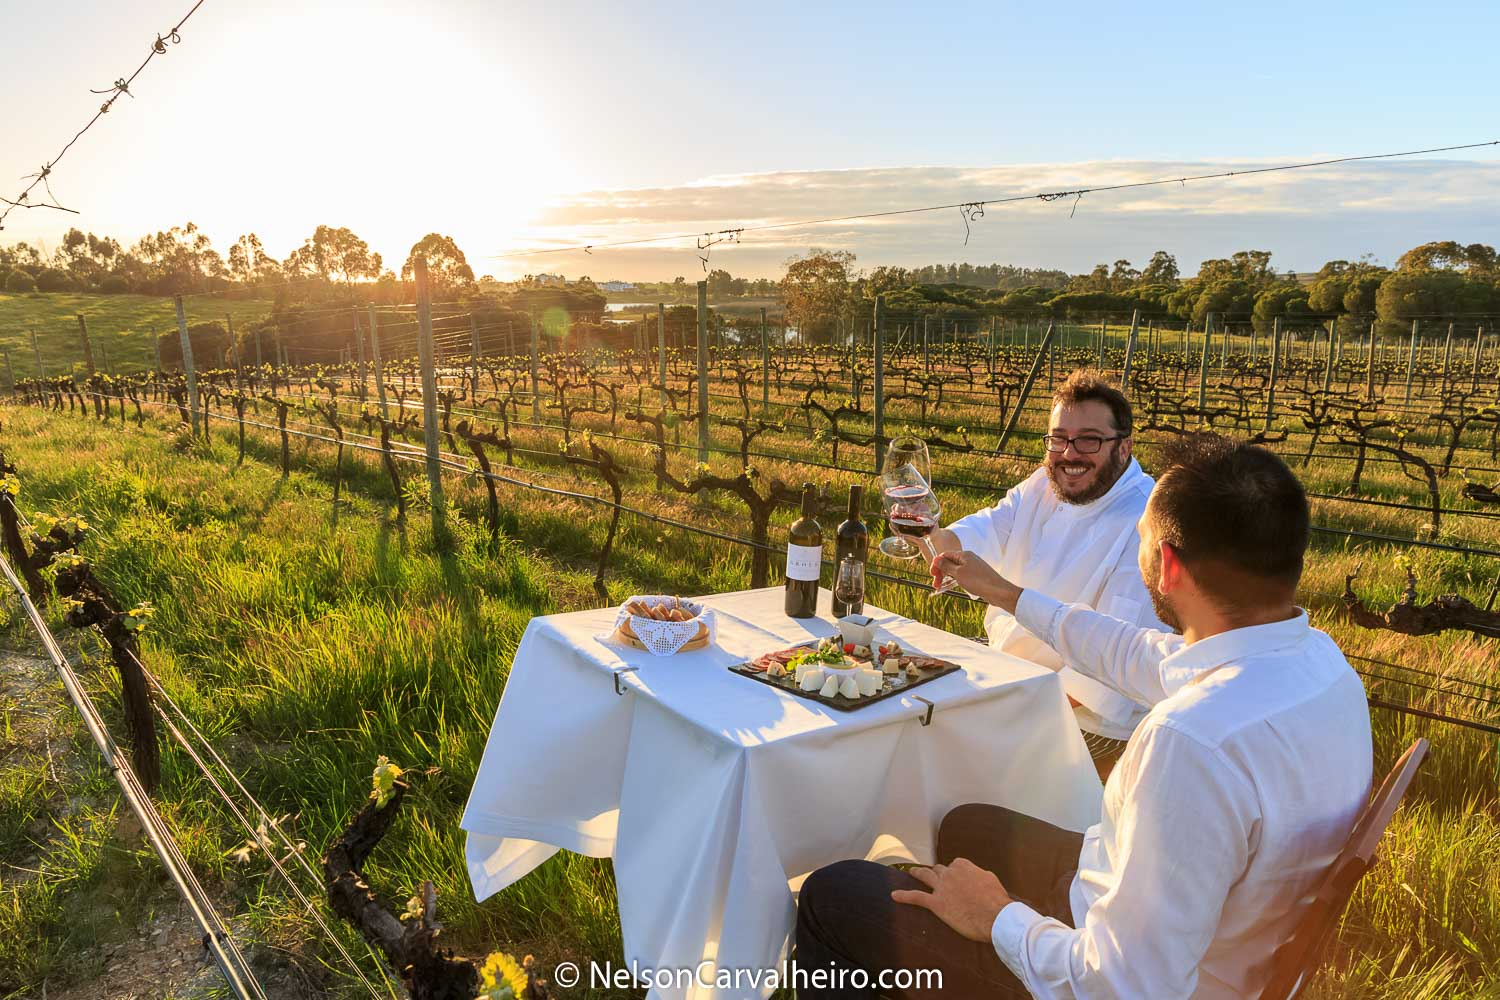 Holiday in Alentejo - Lunch with Winemaker